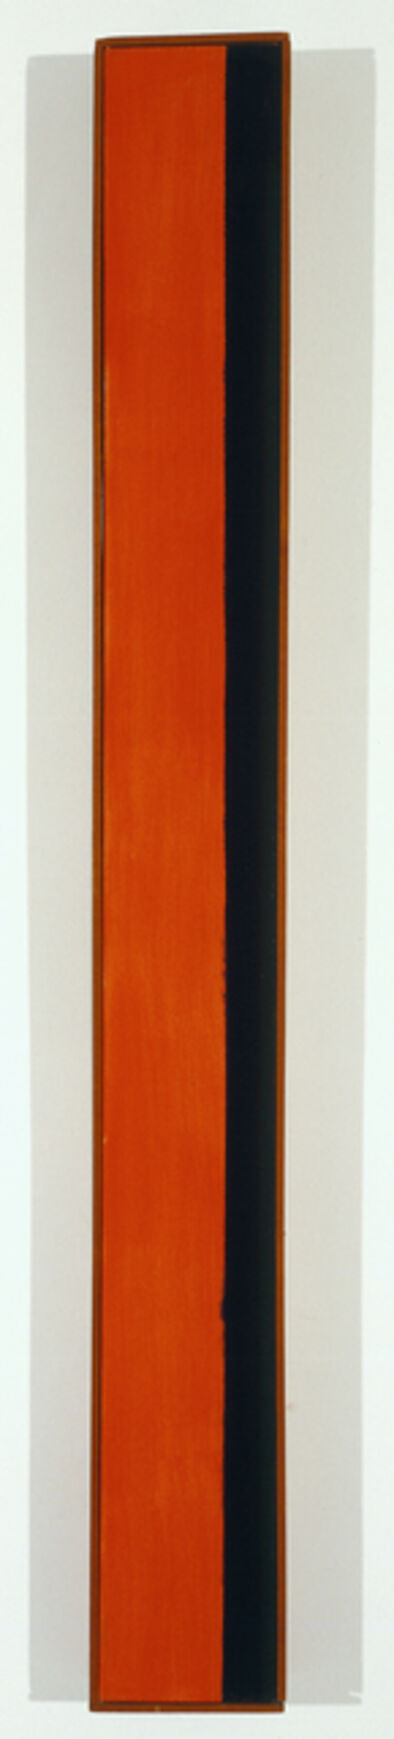 Barnett Newman, 'Untitled (Number 2)', 1950